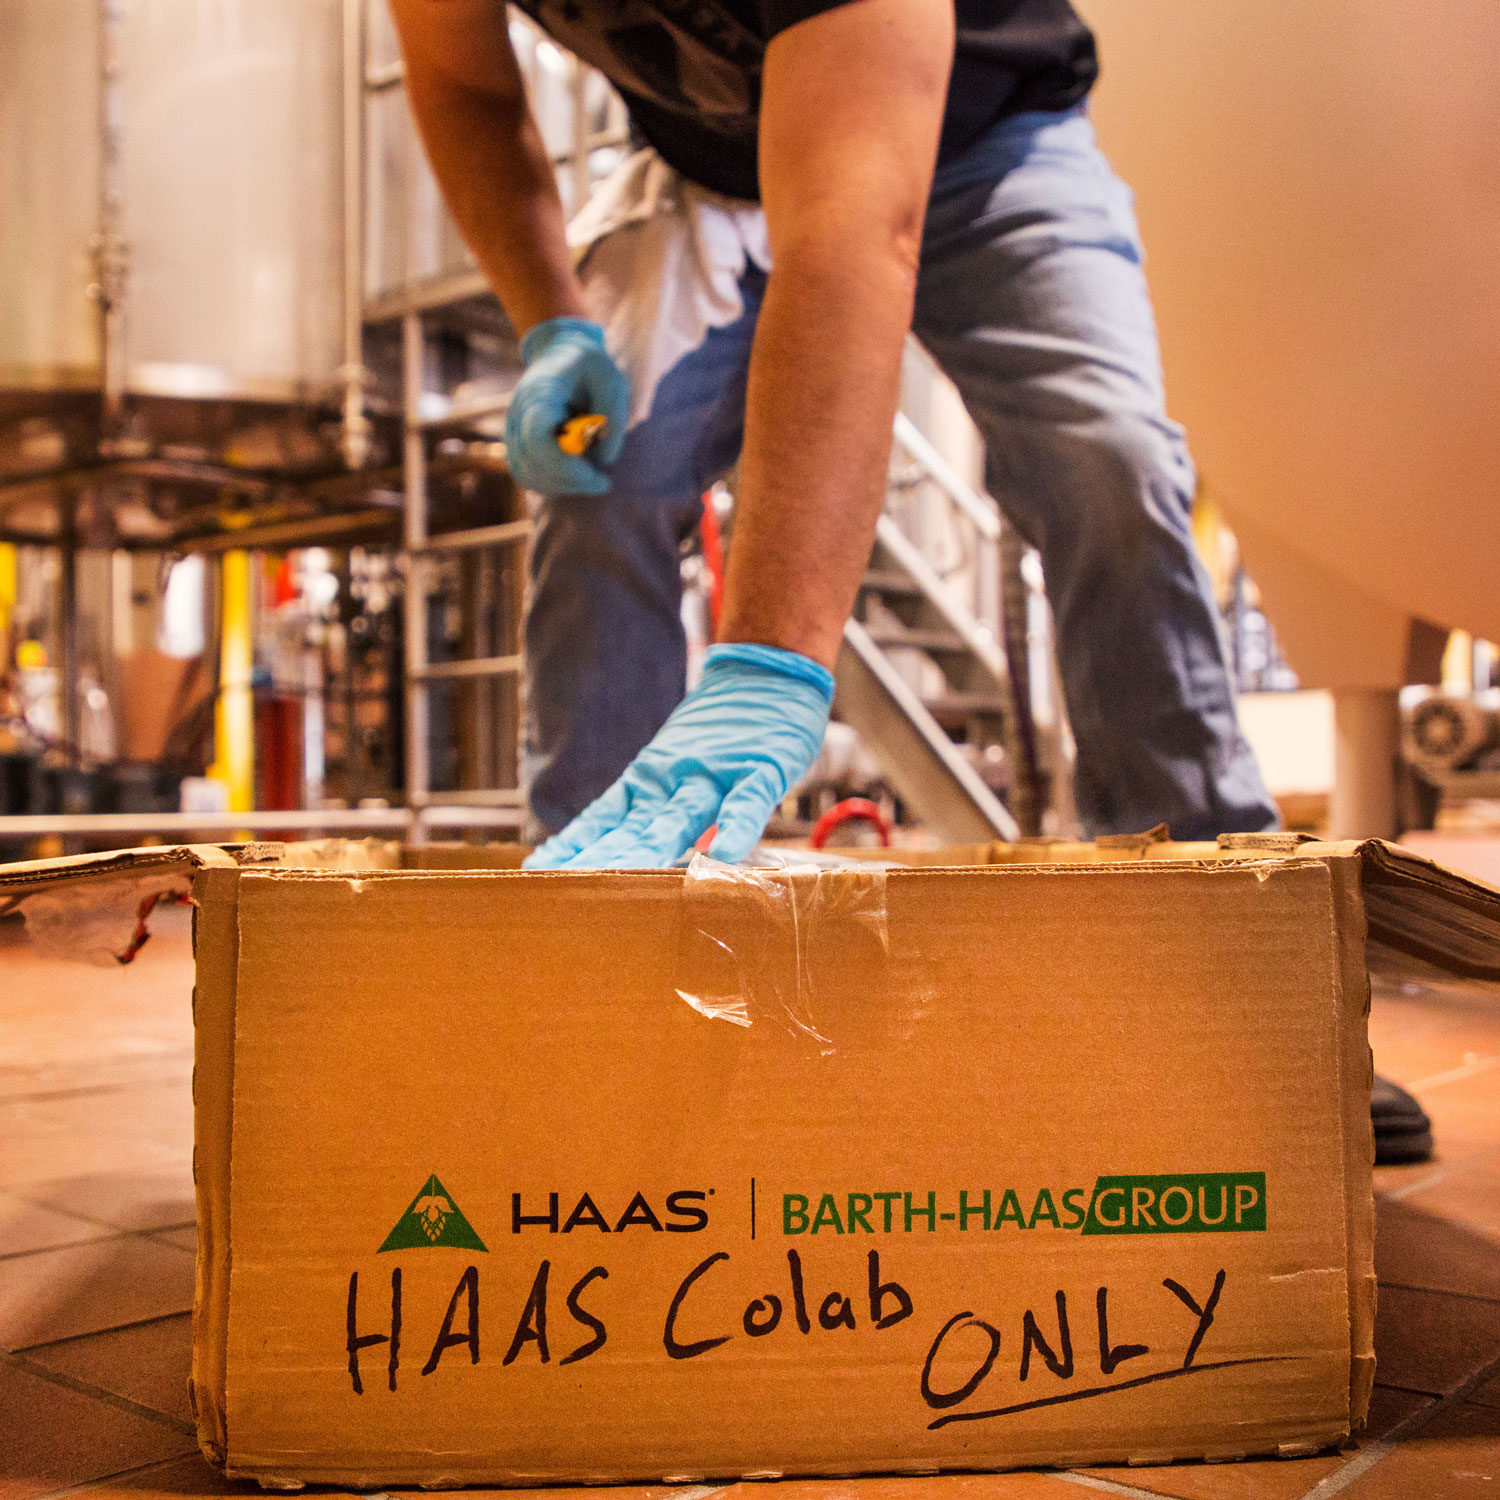 HAAS Colab